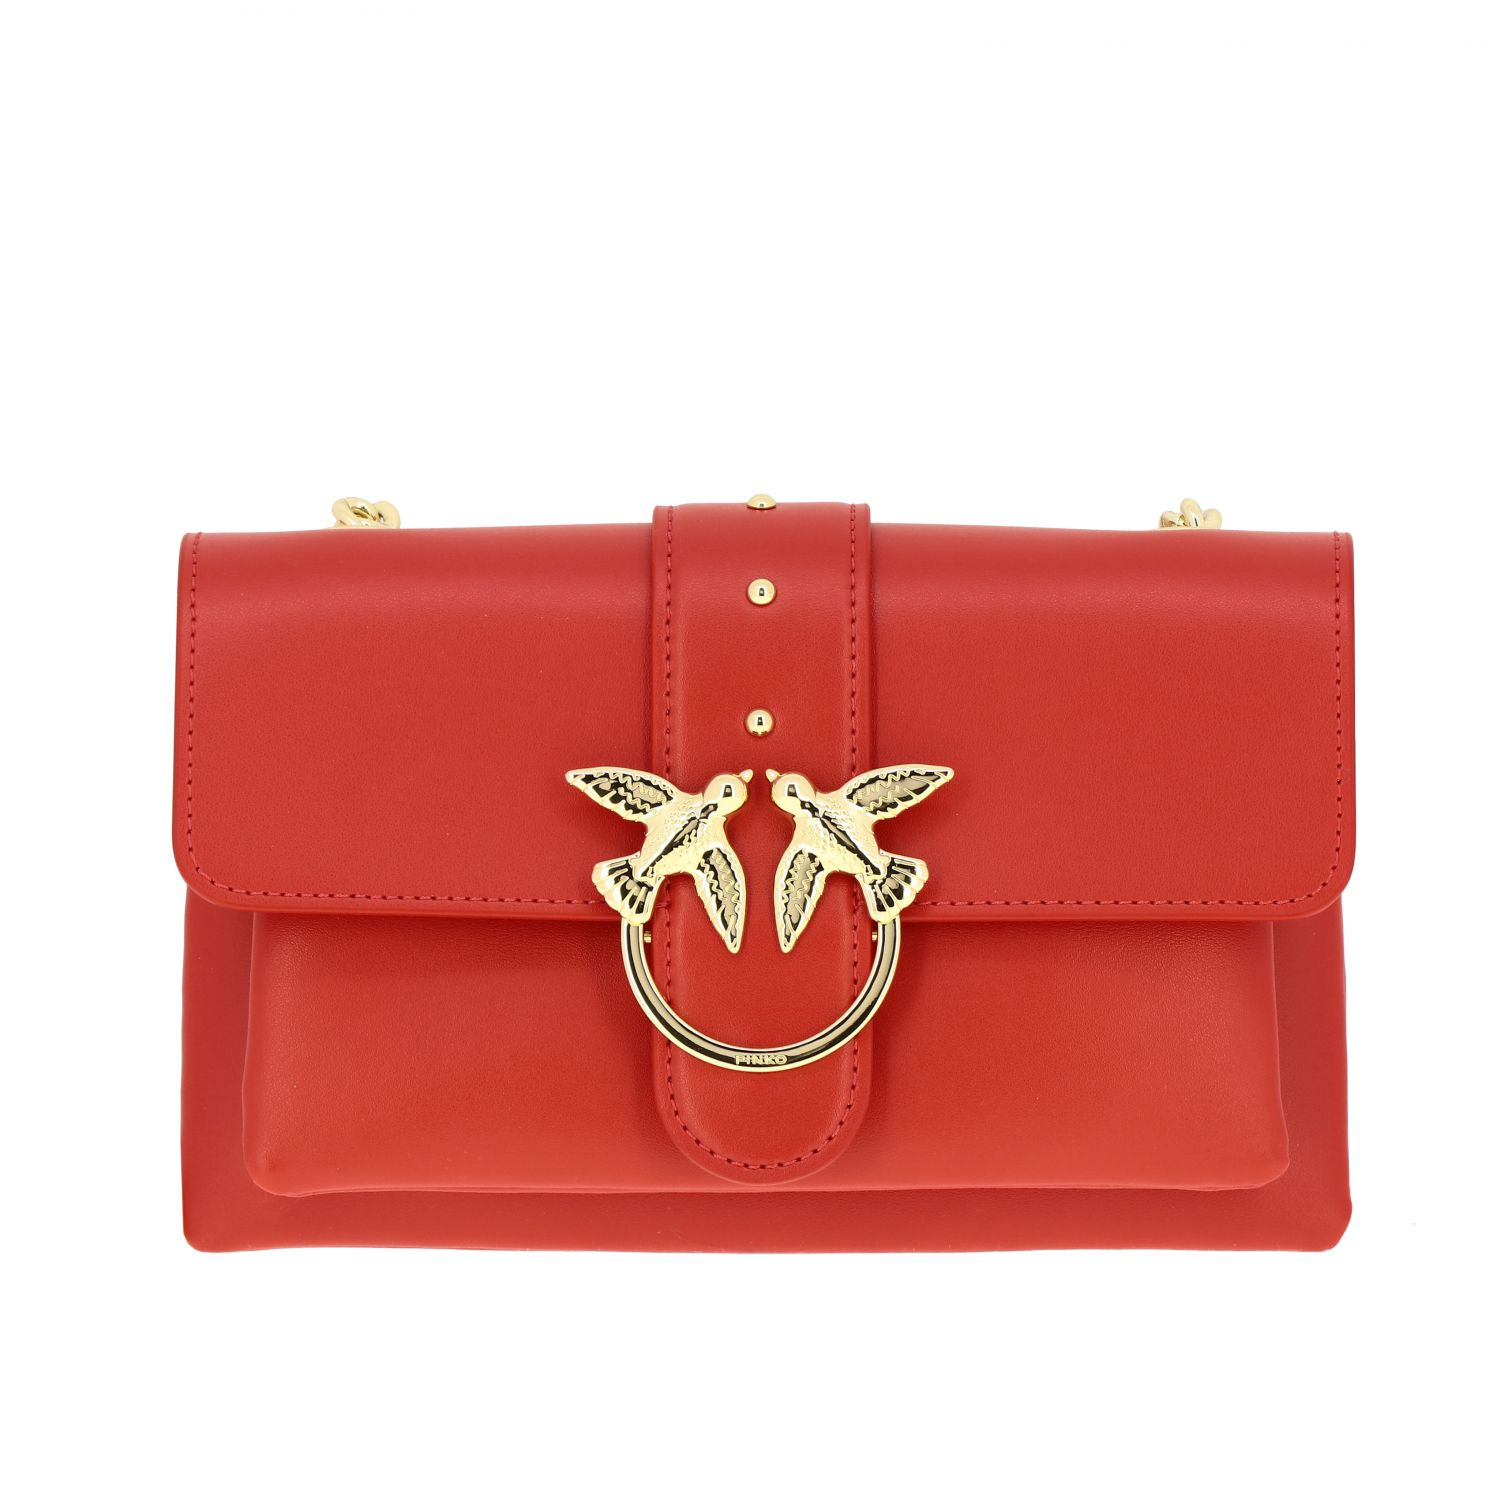 Pinko Love mini soft simply leather bag red 1